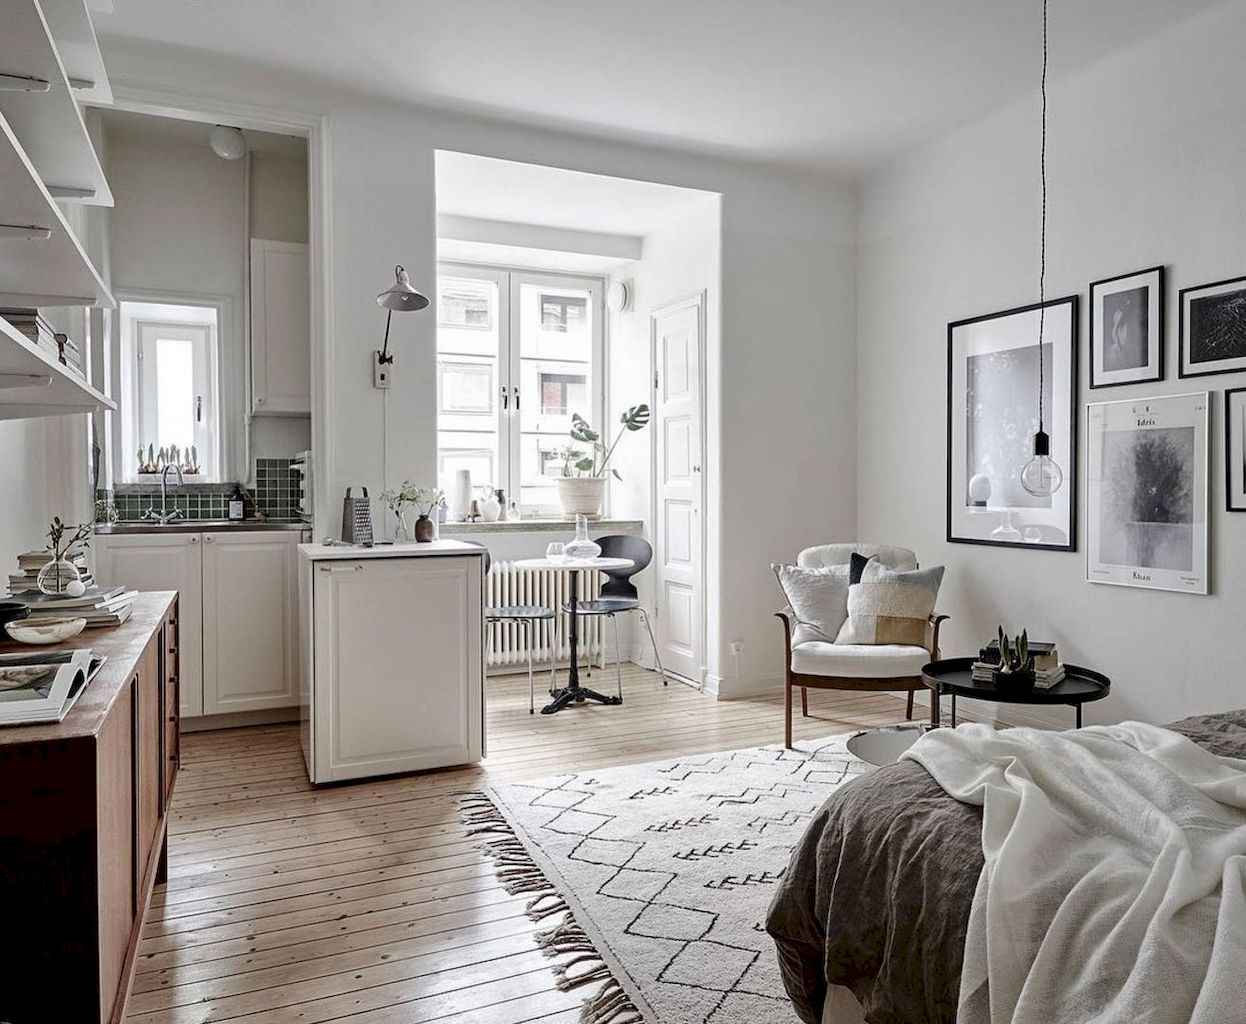 Small apartment studio decorating ideas on a budget (67)